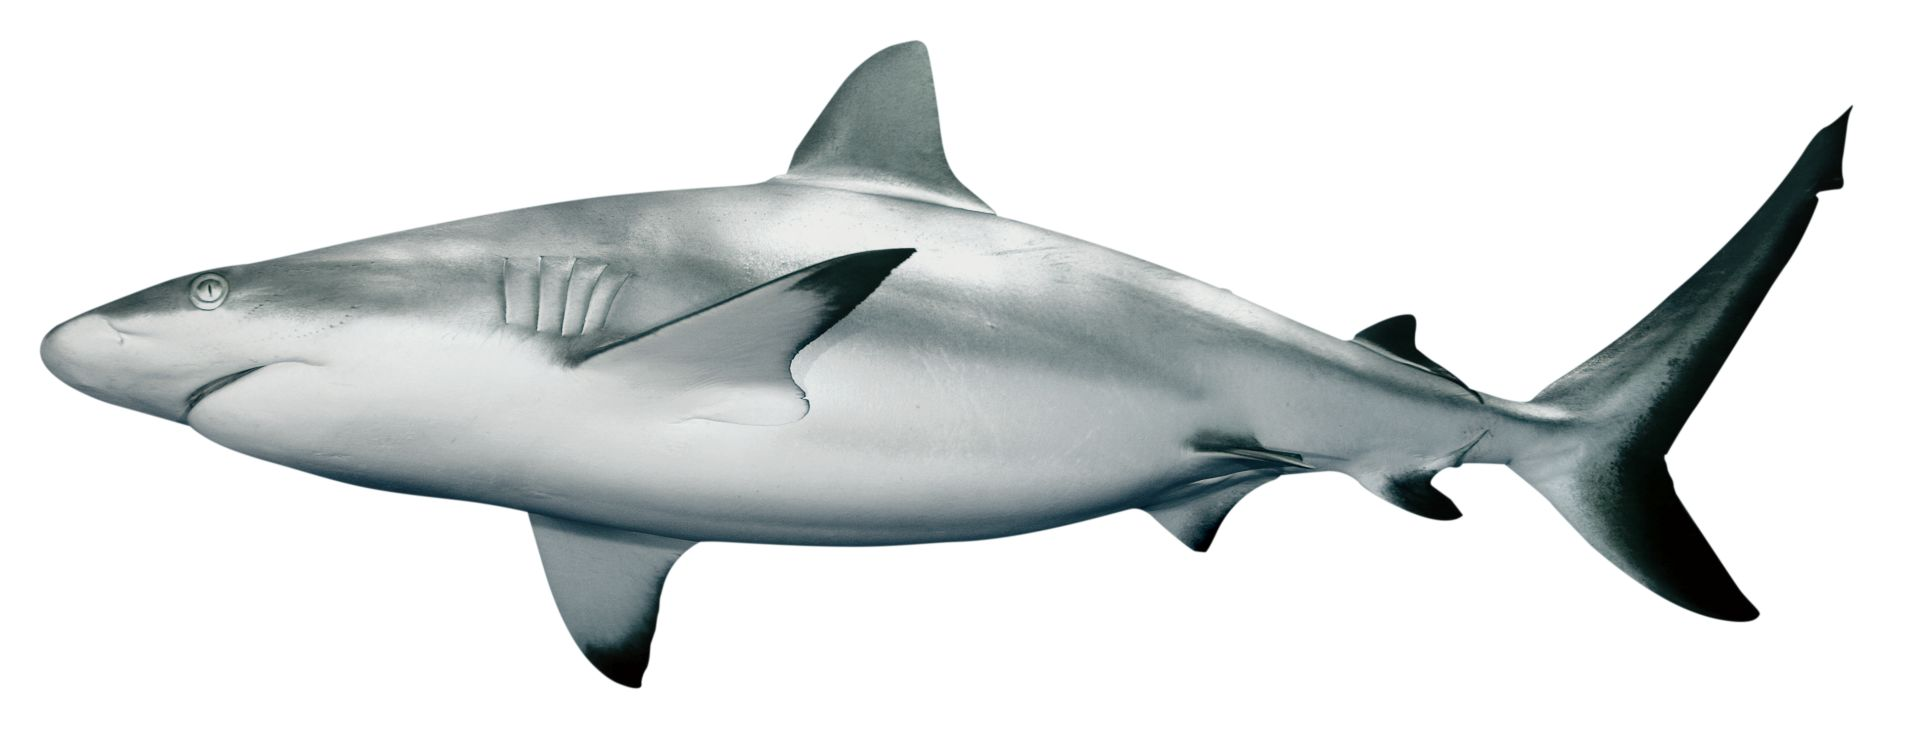 Shark facts for kids information on sharks dk find out grey reef shark dreamstime xl 5569552 qmsbfl thecheapjerseys Gallery